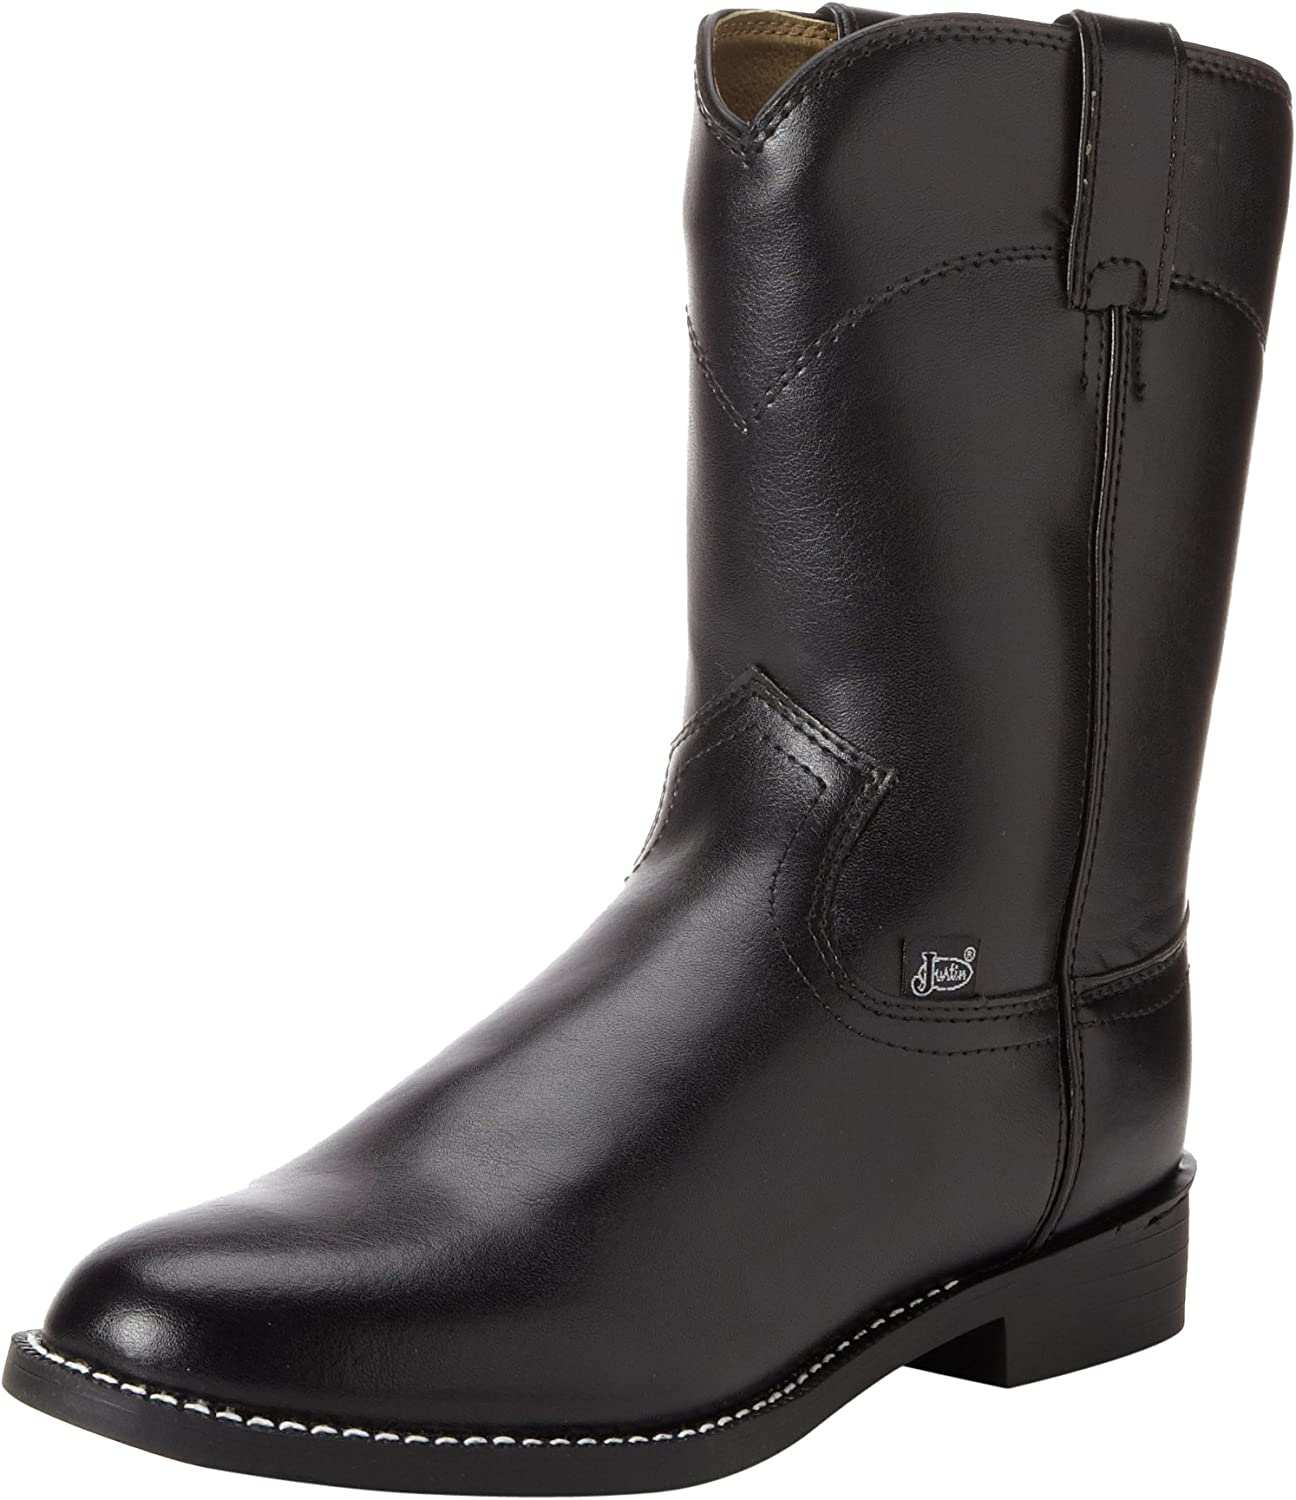 1 year warranty Justin Boots Men's Courier shipping free 3001 Farm Boot 10